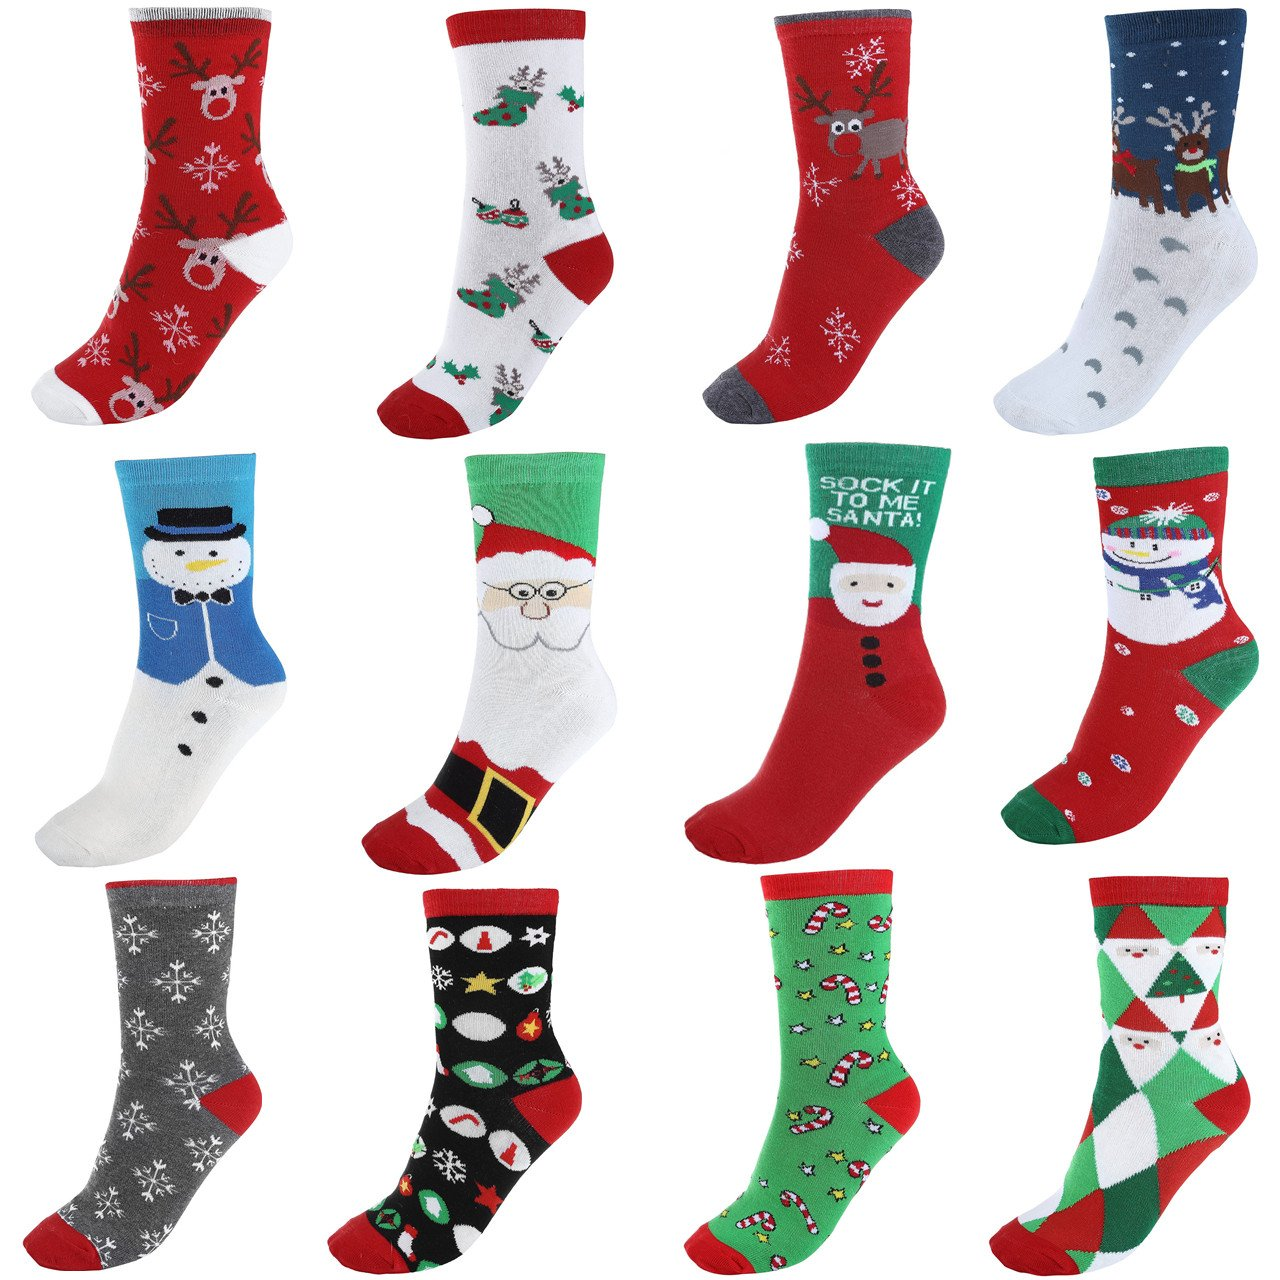 Ayliss 12Pairs Women's Cute Pattern Colorful Cotton Crew Socks,Christmas Style